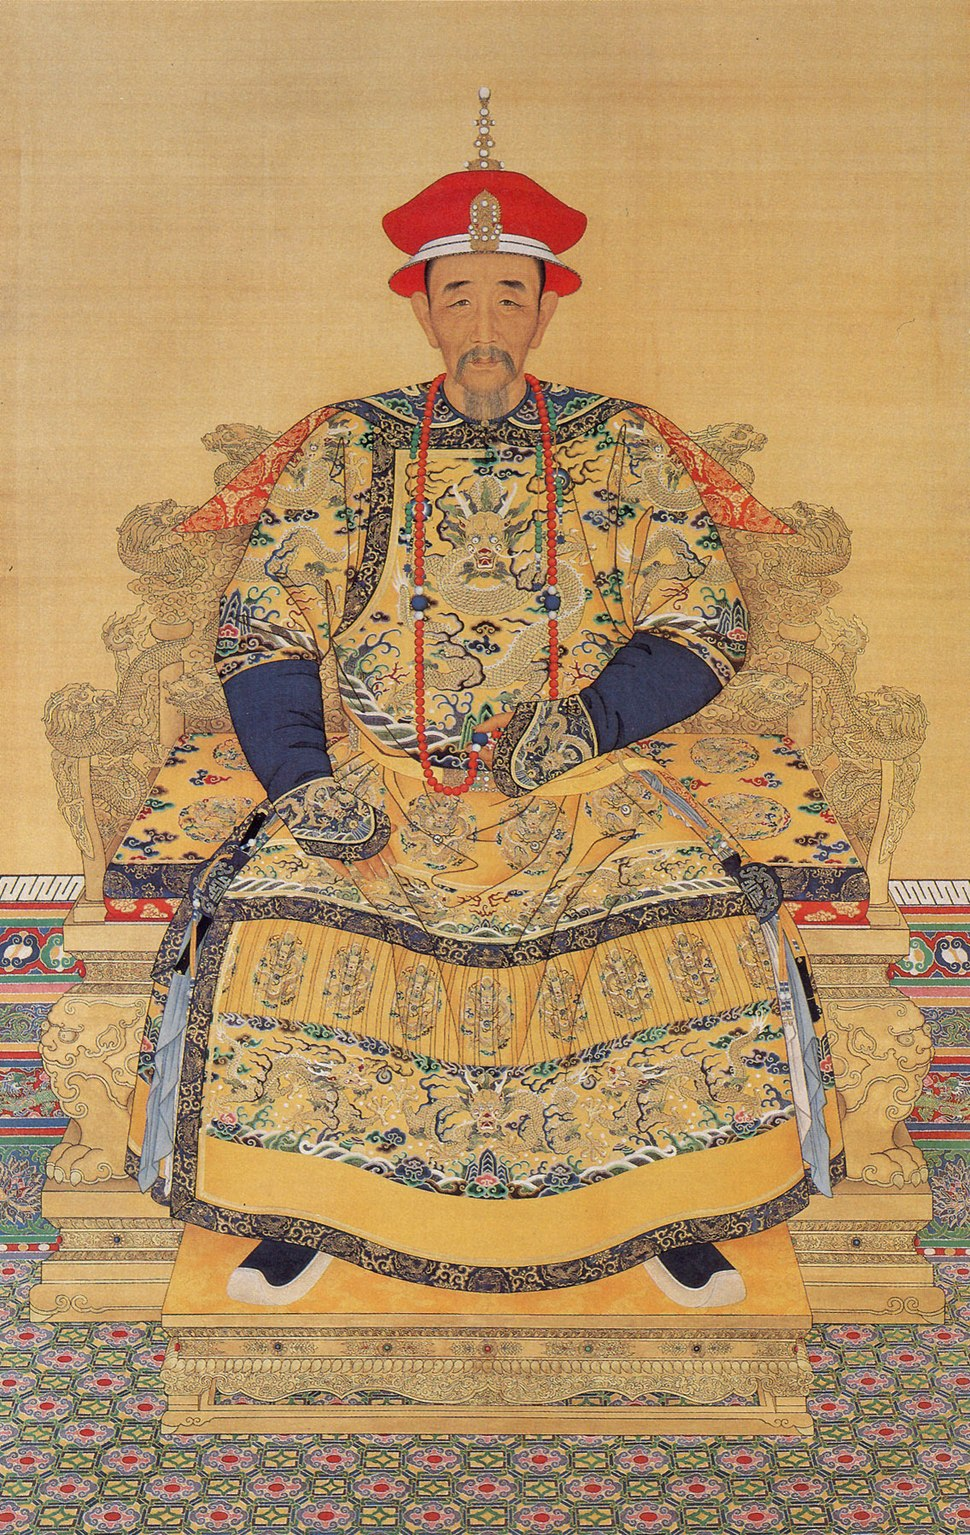 Portrait of the Kangxi Emperor in Court Dress